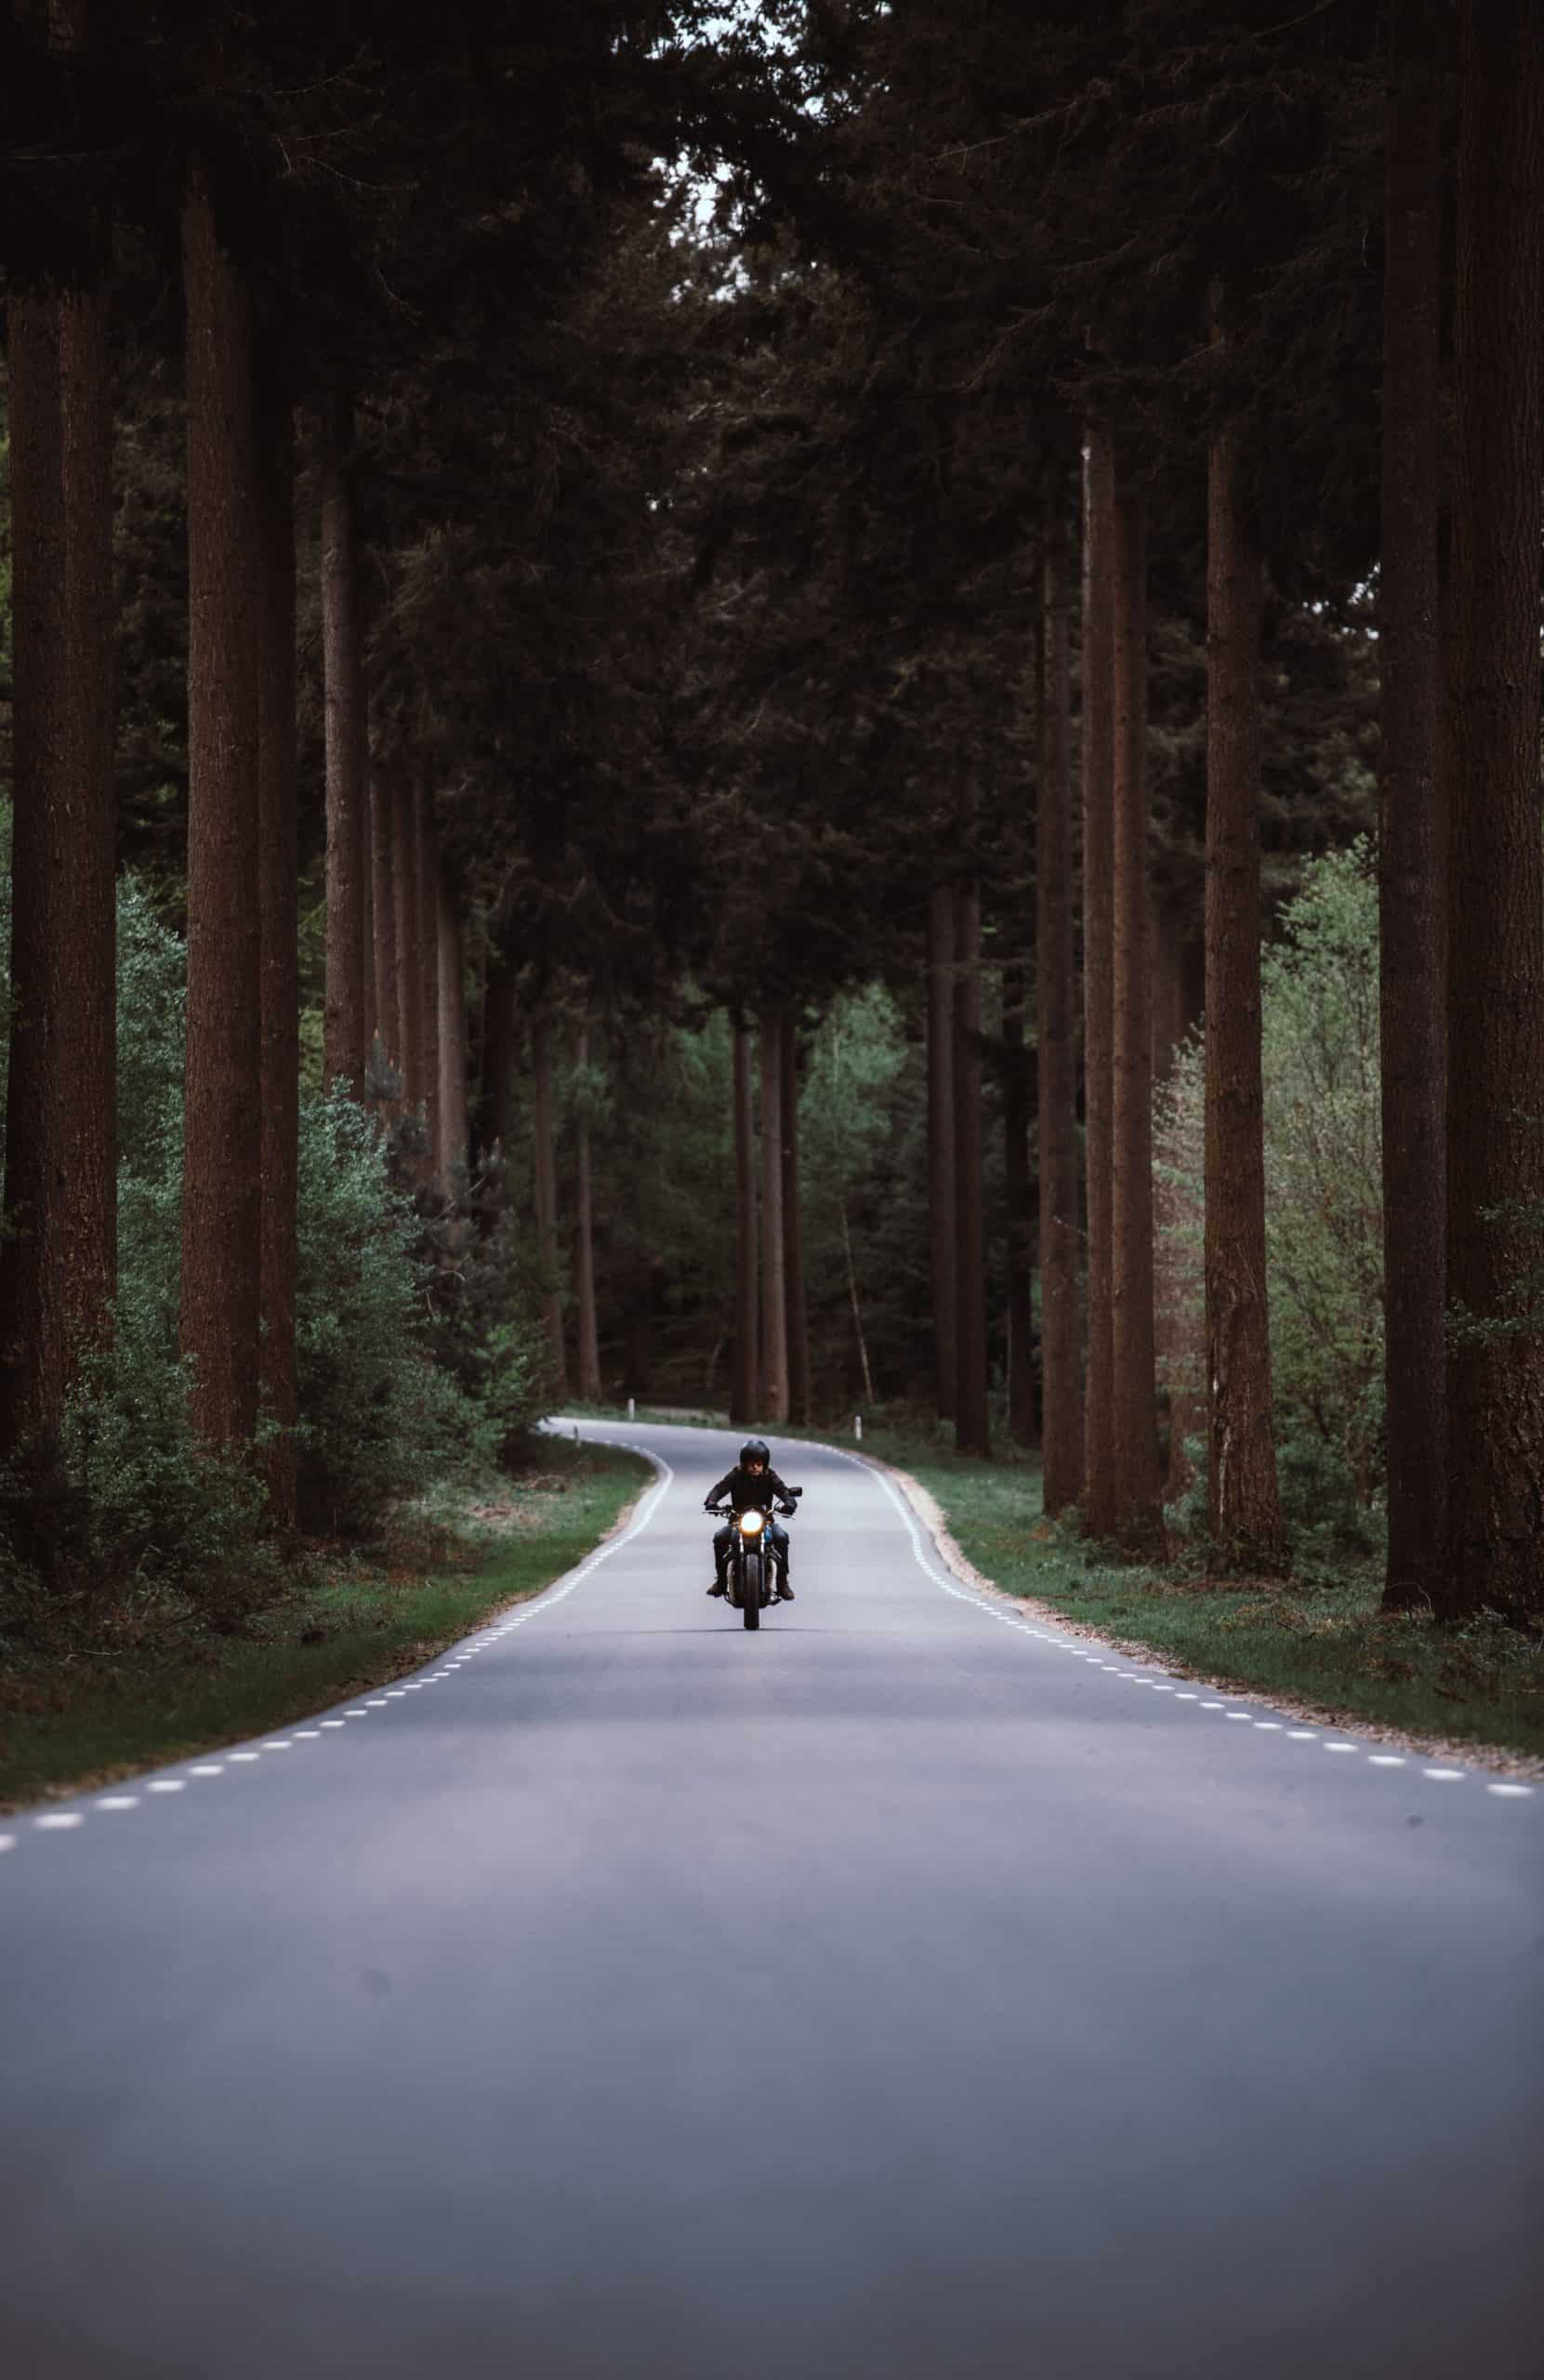 Here Are Some Of The Motorcycle Safety Tips